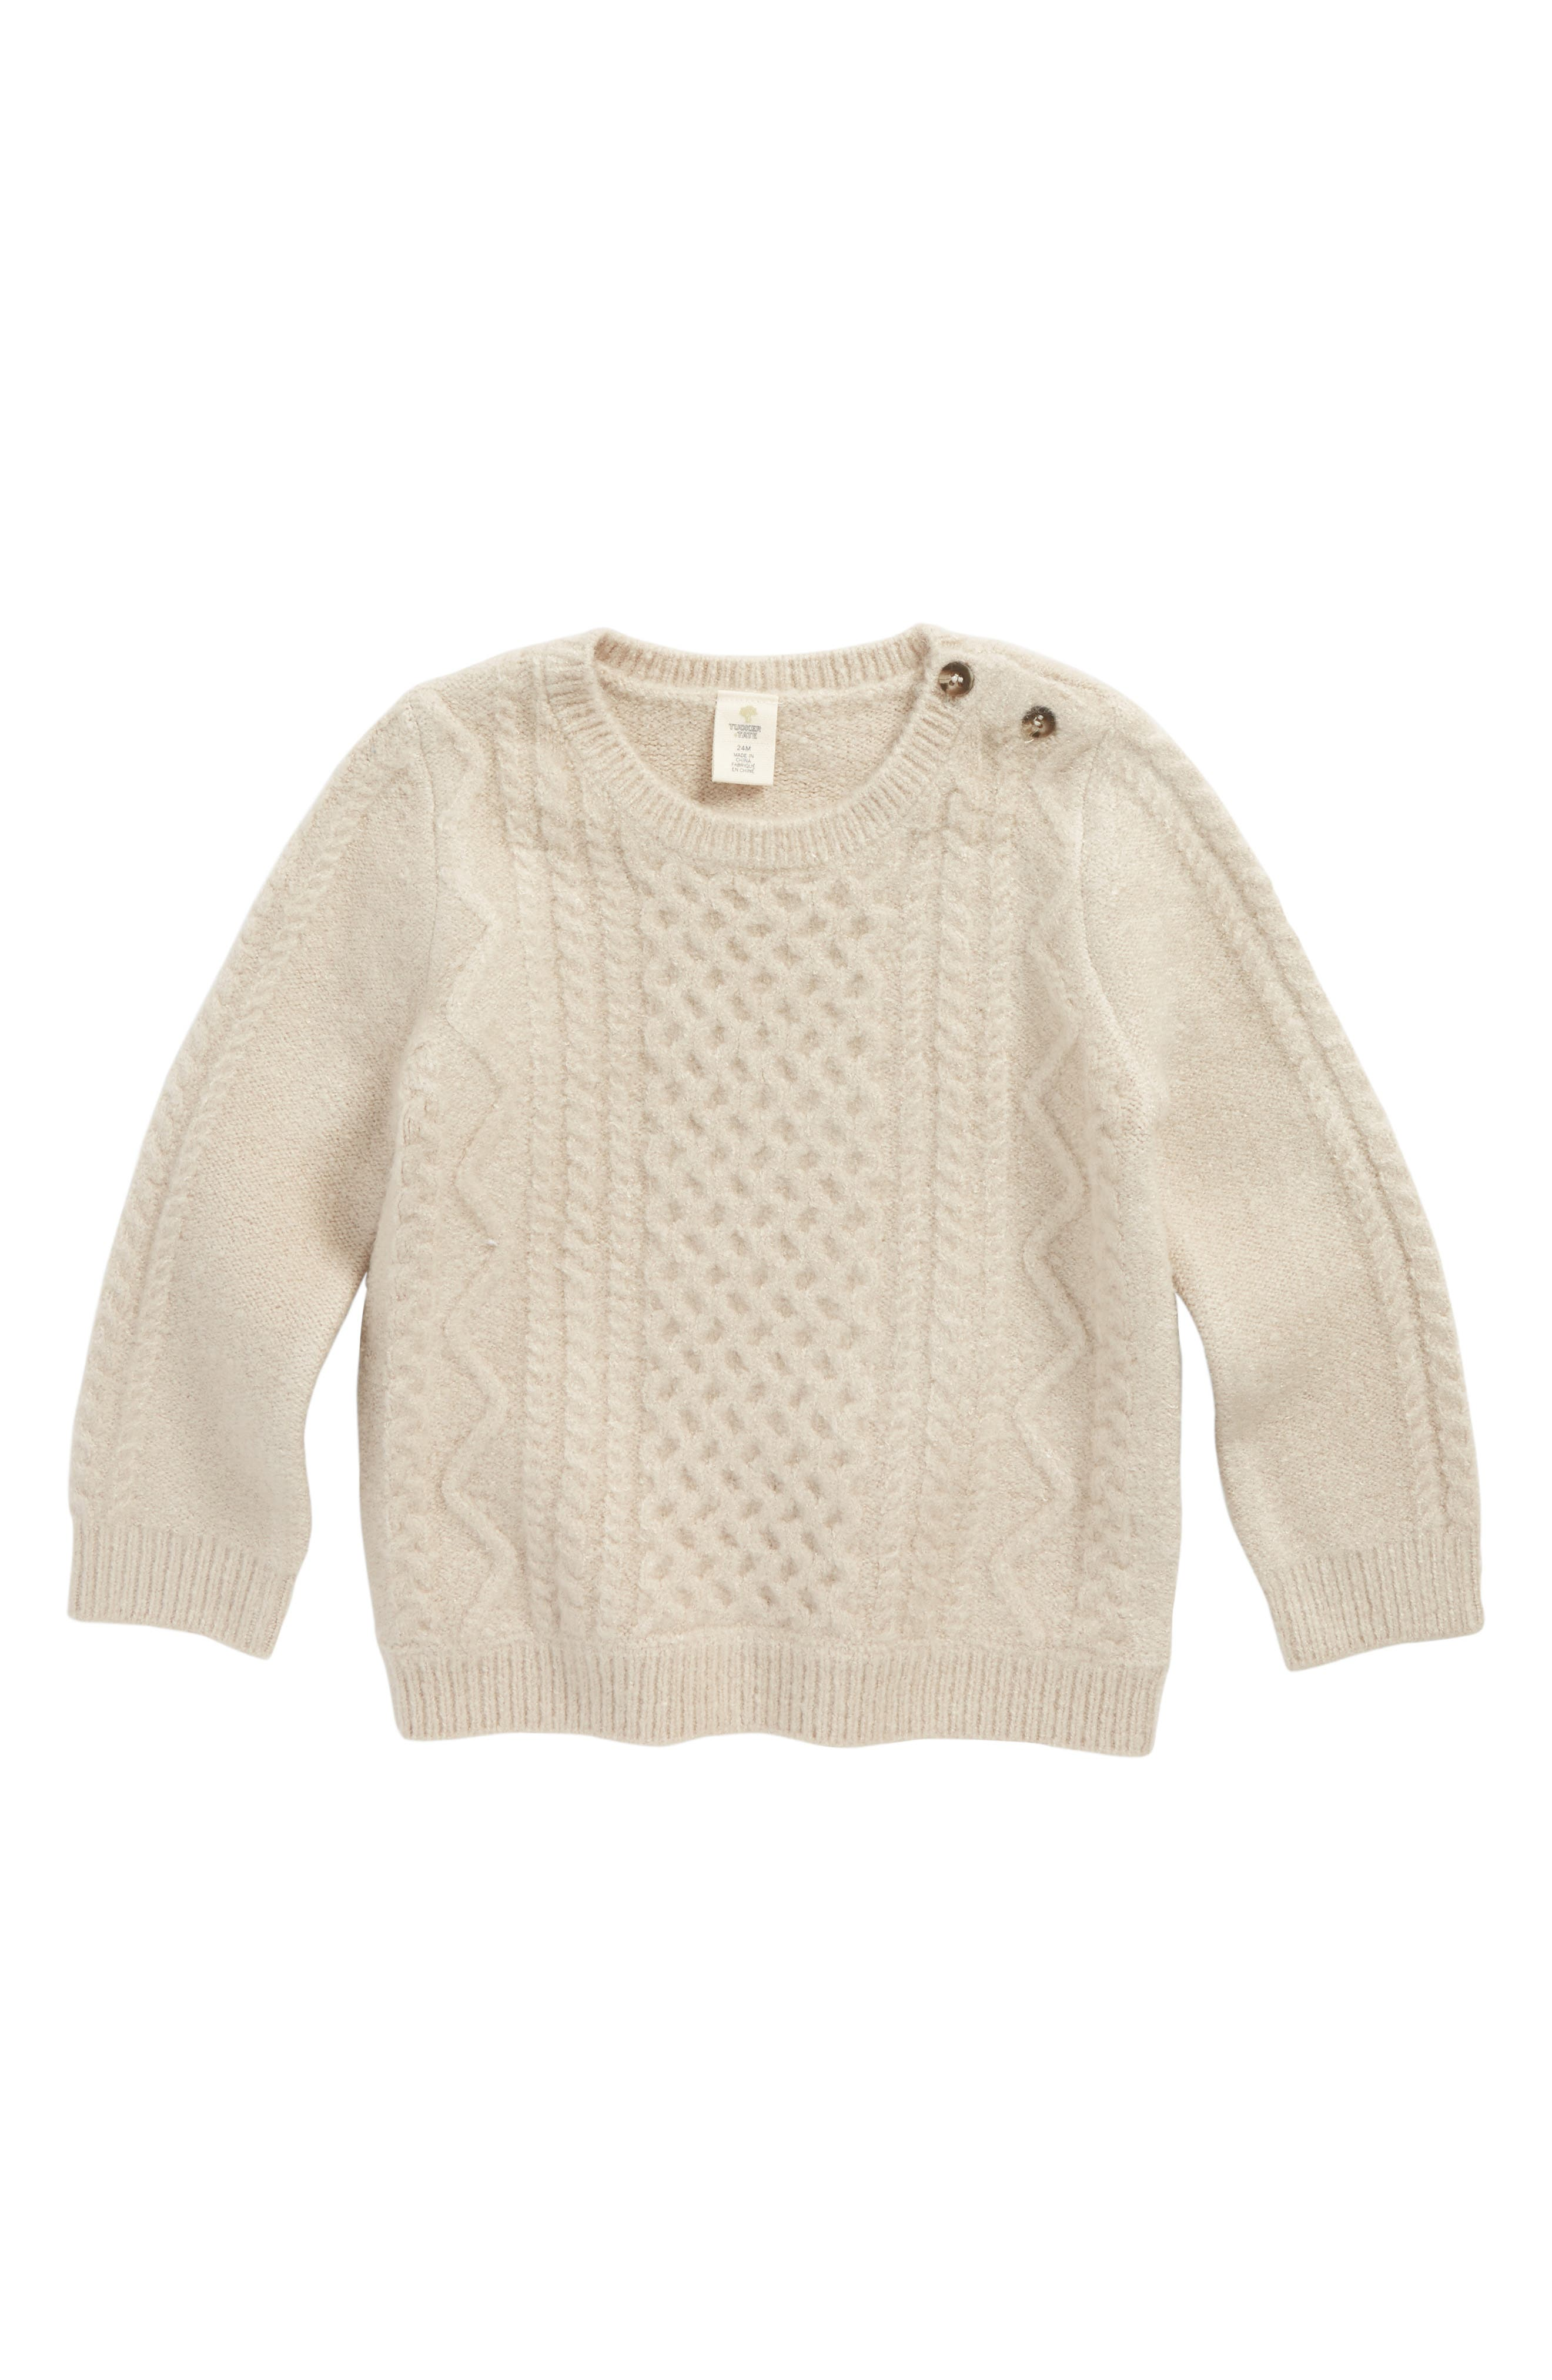 Alternate Image 1 Selected - Tucker + Tate Cable Sweater (Baby)